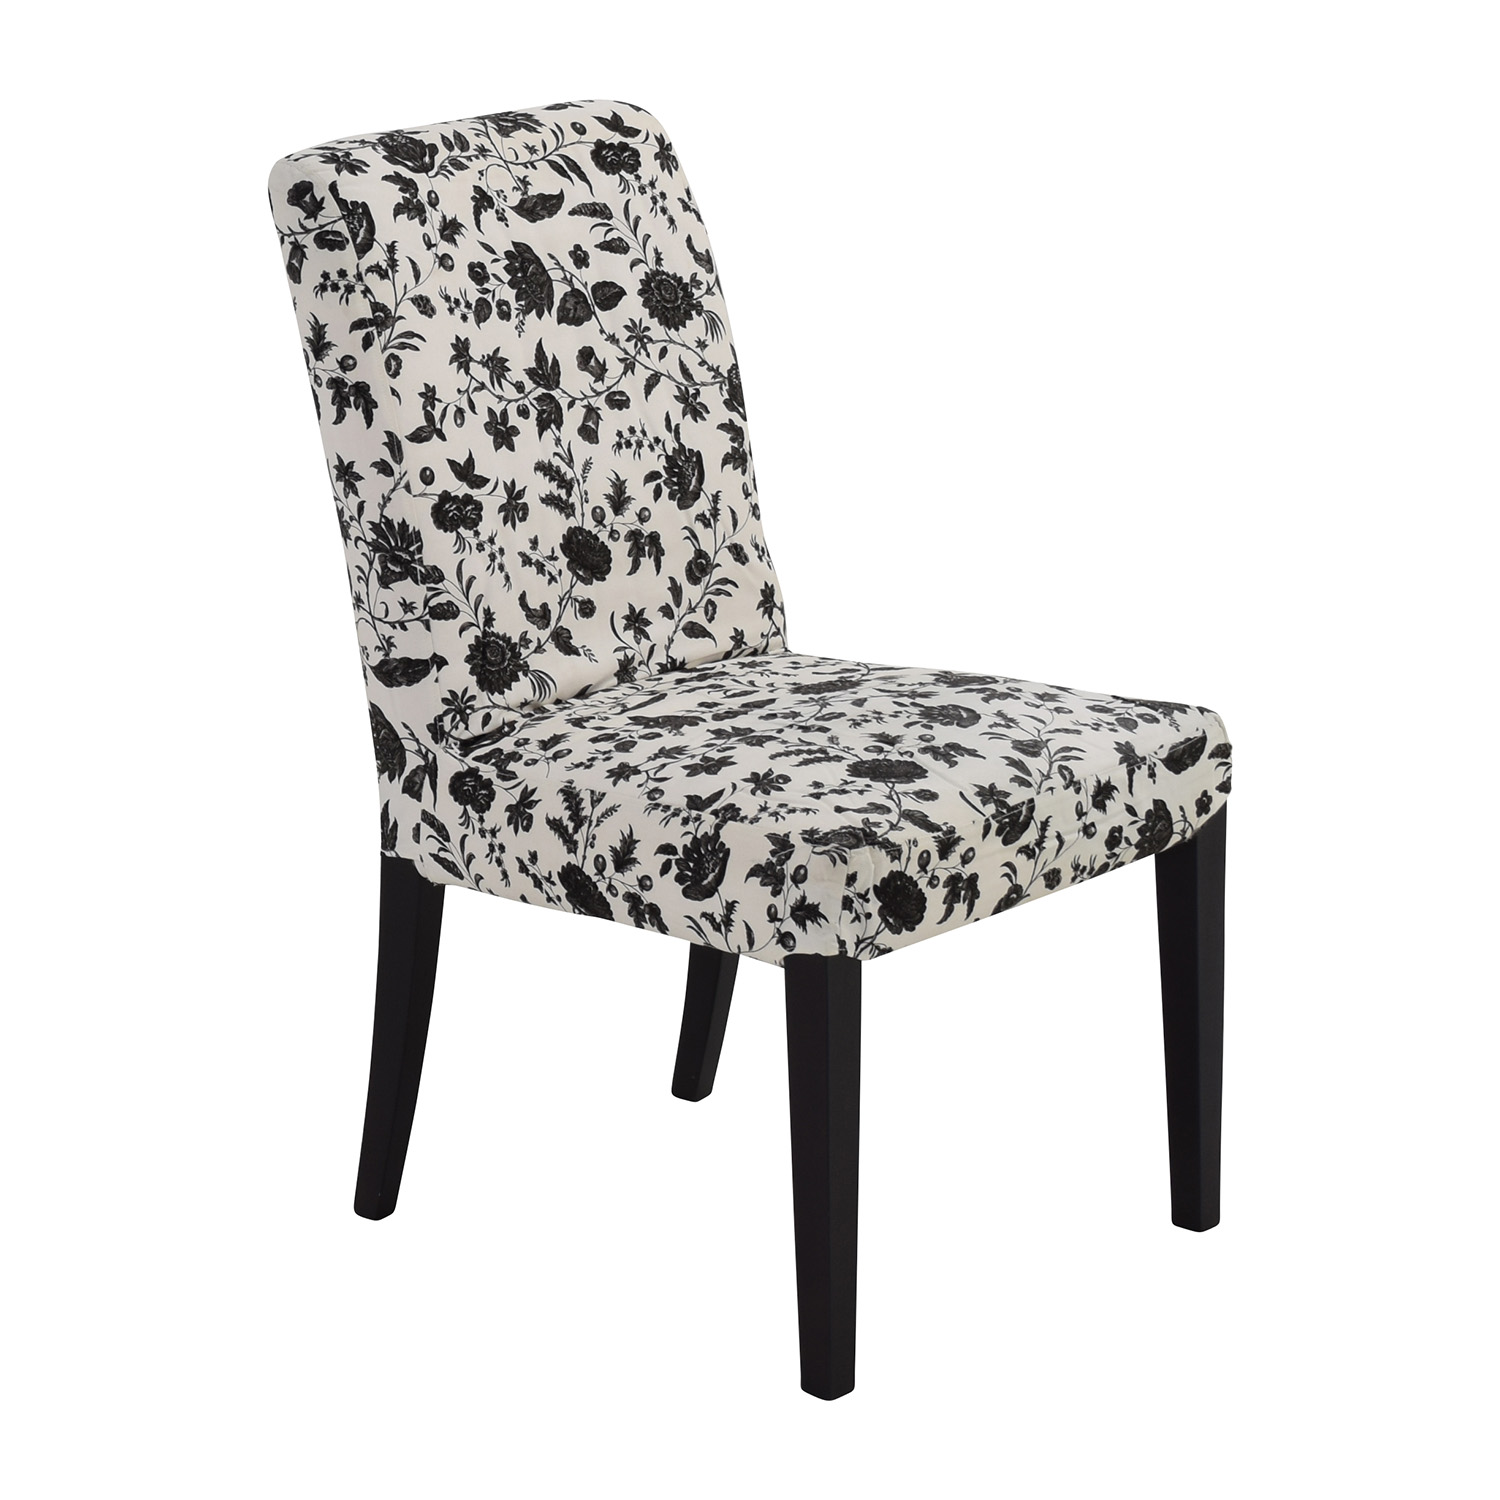 77% OFF Black & White Floral Dining Chair Chairs